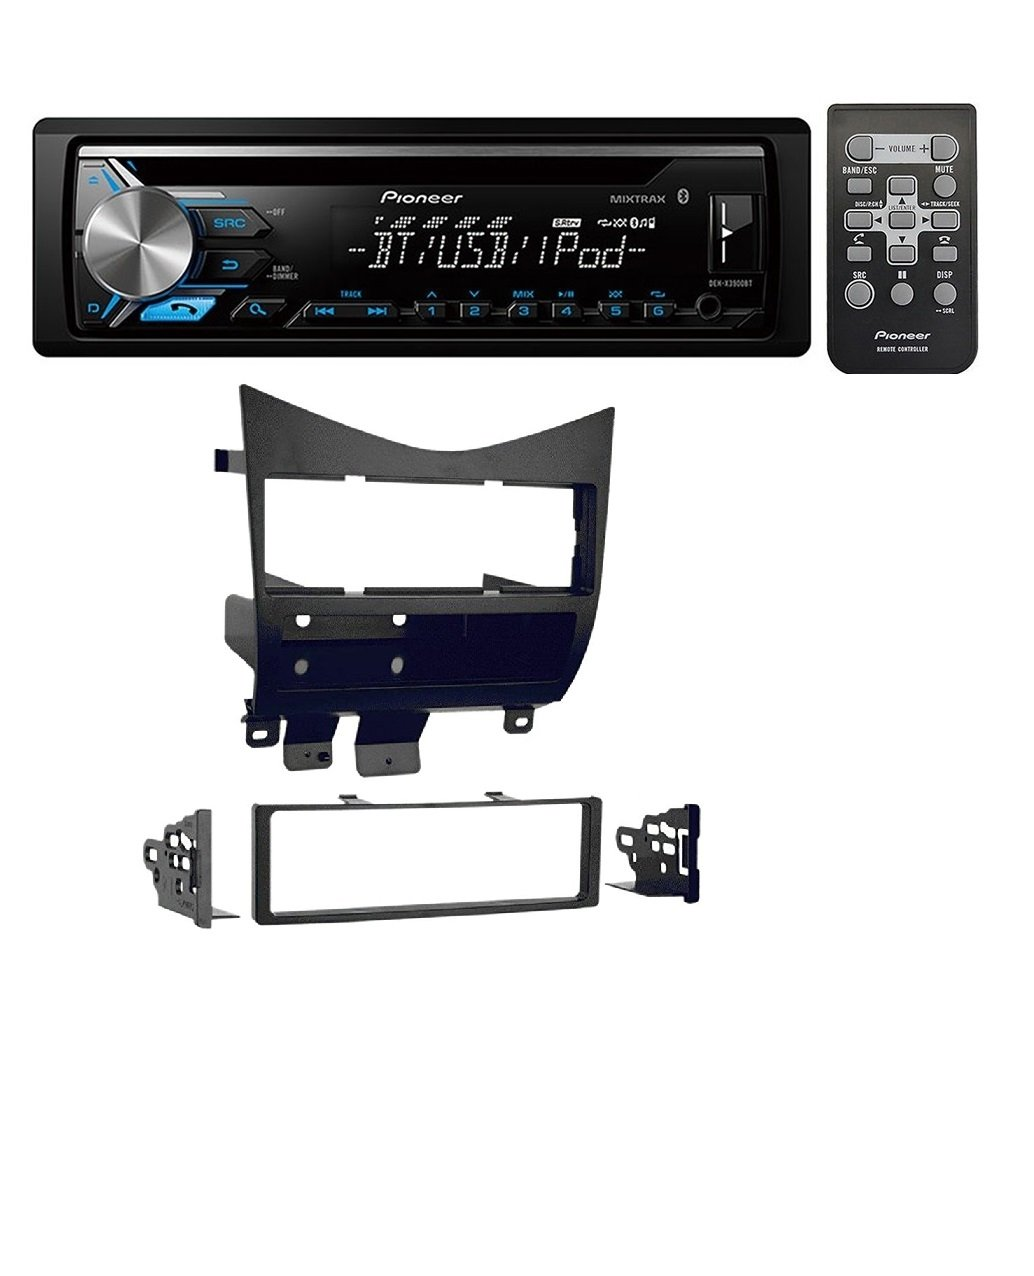 Honda Accord Radio Install Kit With Pioneer Deh X3900bt Western Star Wiring Harness Single Din Car Stereo Cd Receiver Built In Bluetooth Electronics